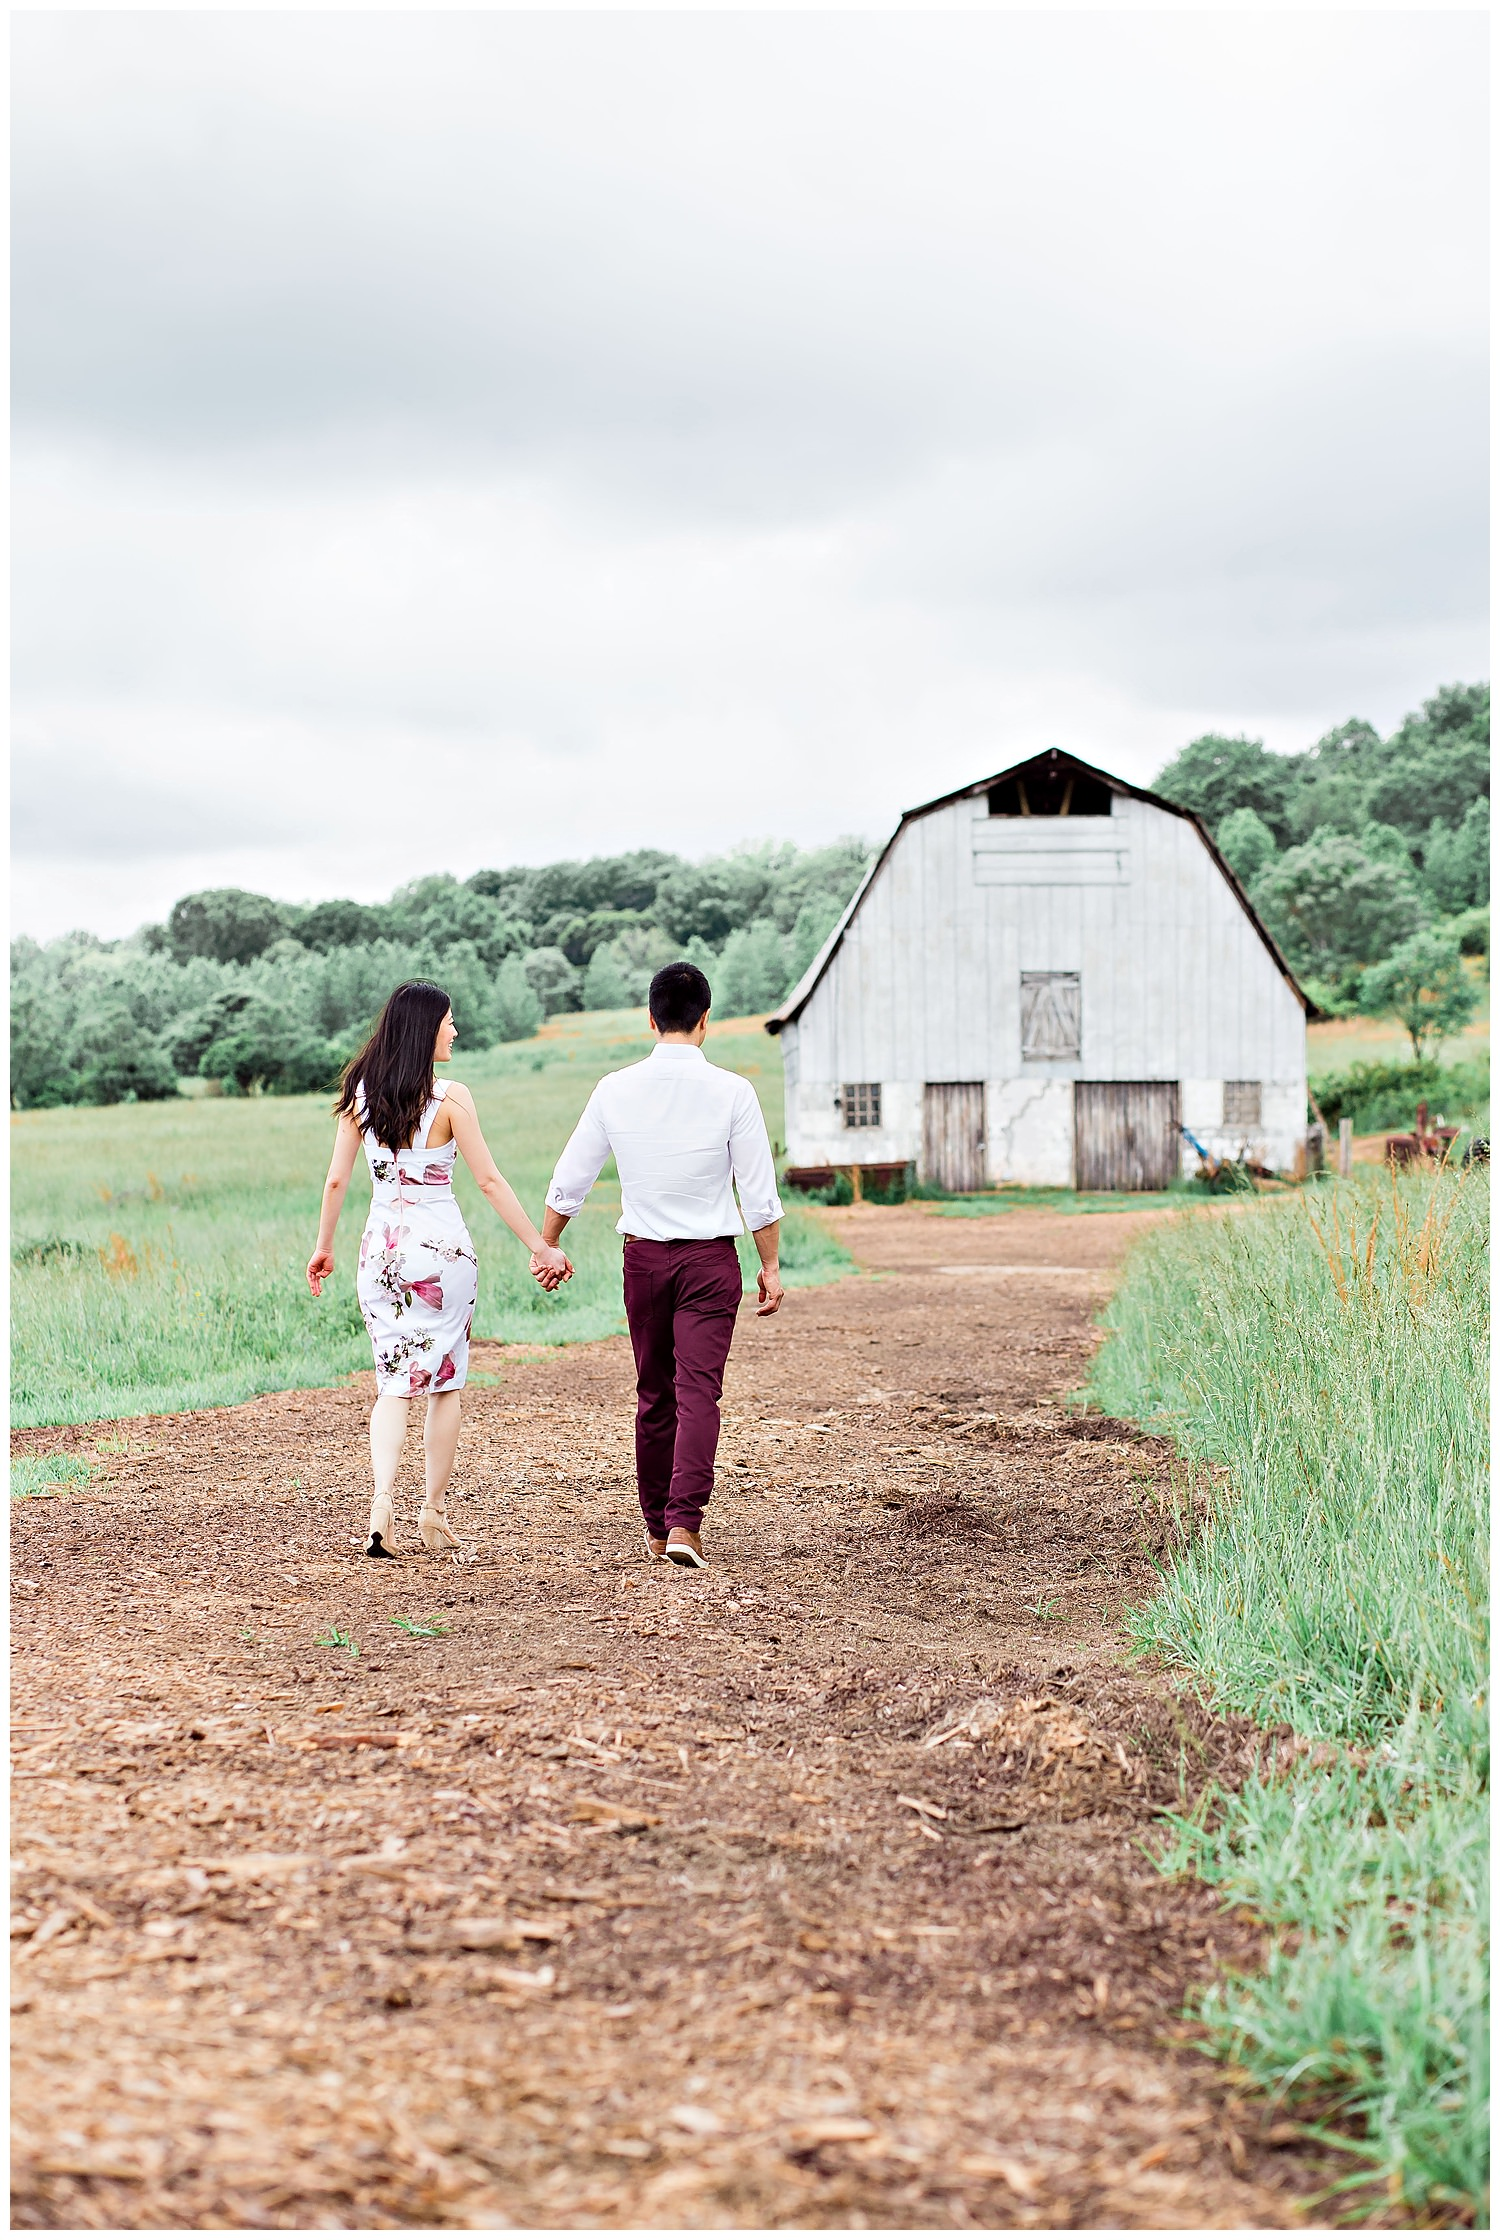 Arabia Mountain Vaughter farm engagement session with Gary Lun Photography